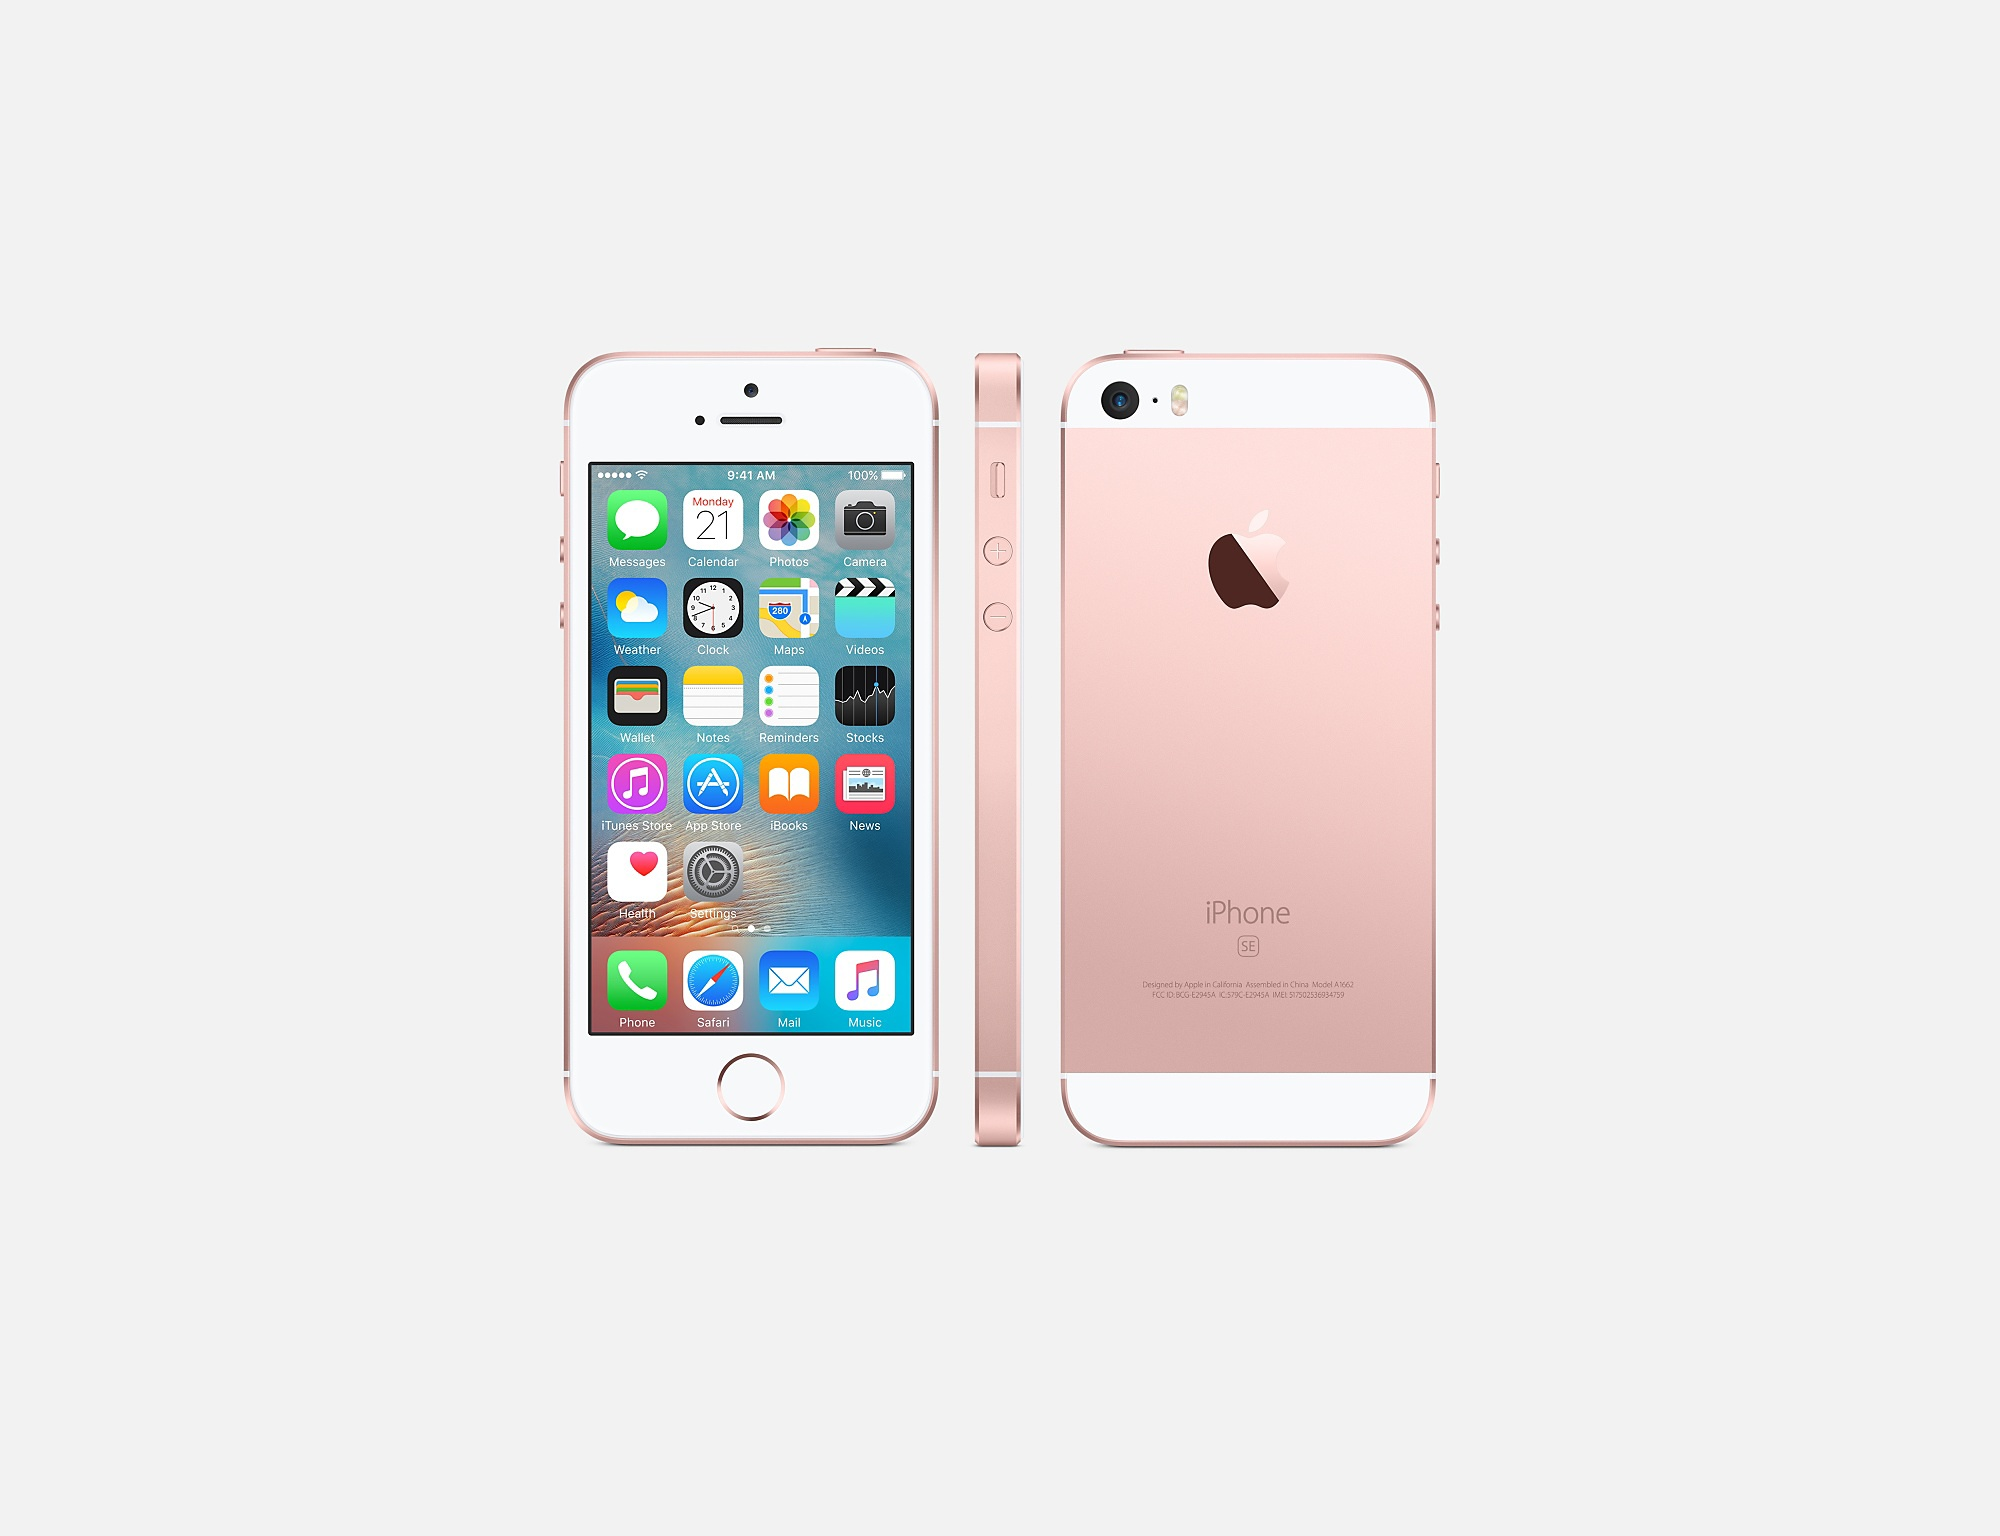 Apple-iPhone-SE---the-official-images-gallery